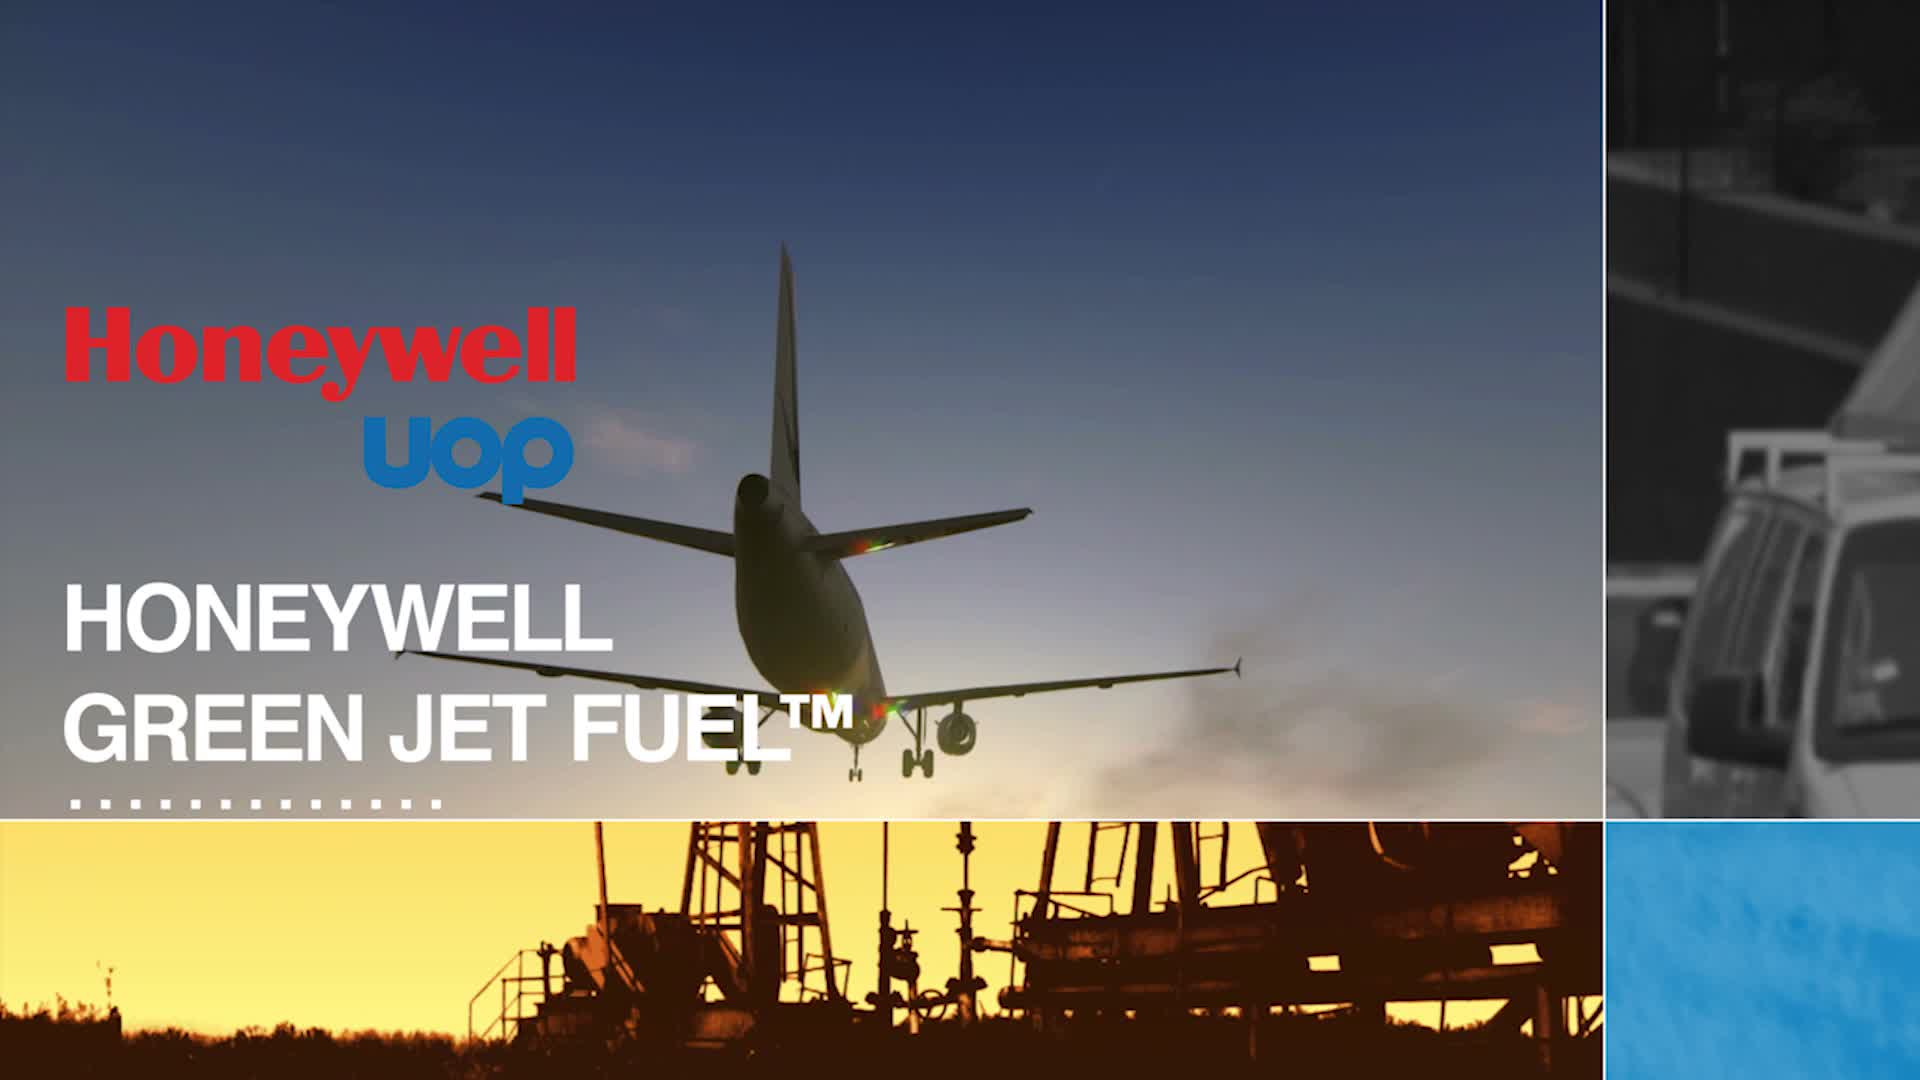 Honeywell Green Jet Fuel -- real, sustainable fuel that reduces greenhouse gas emissions by up to 85%